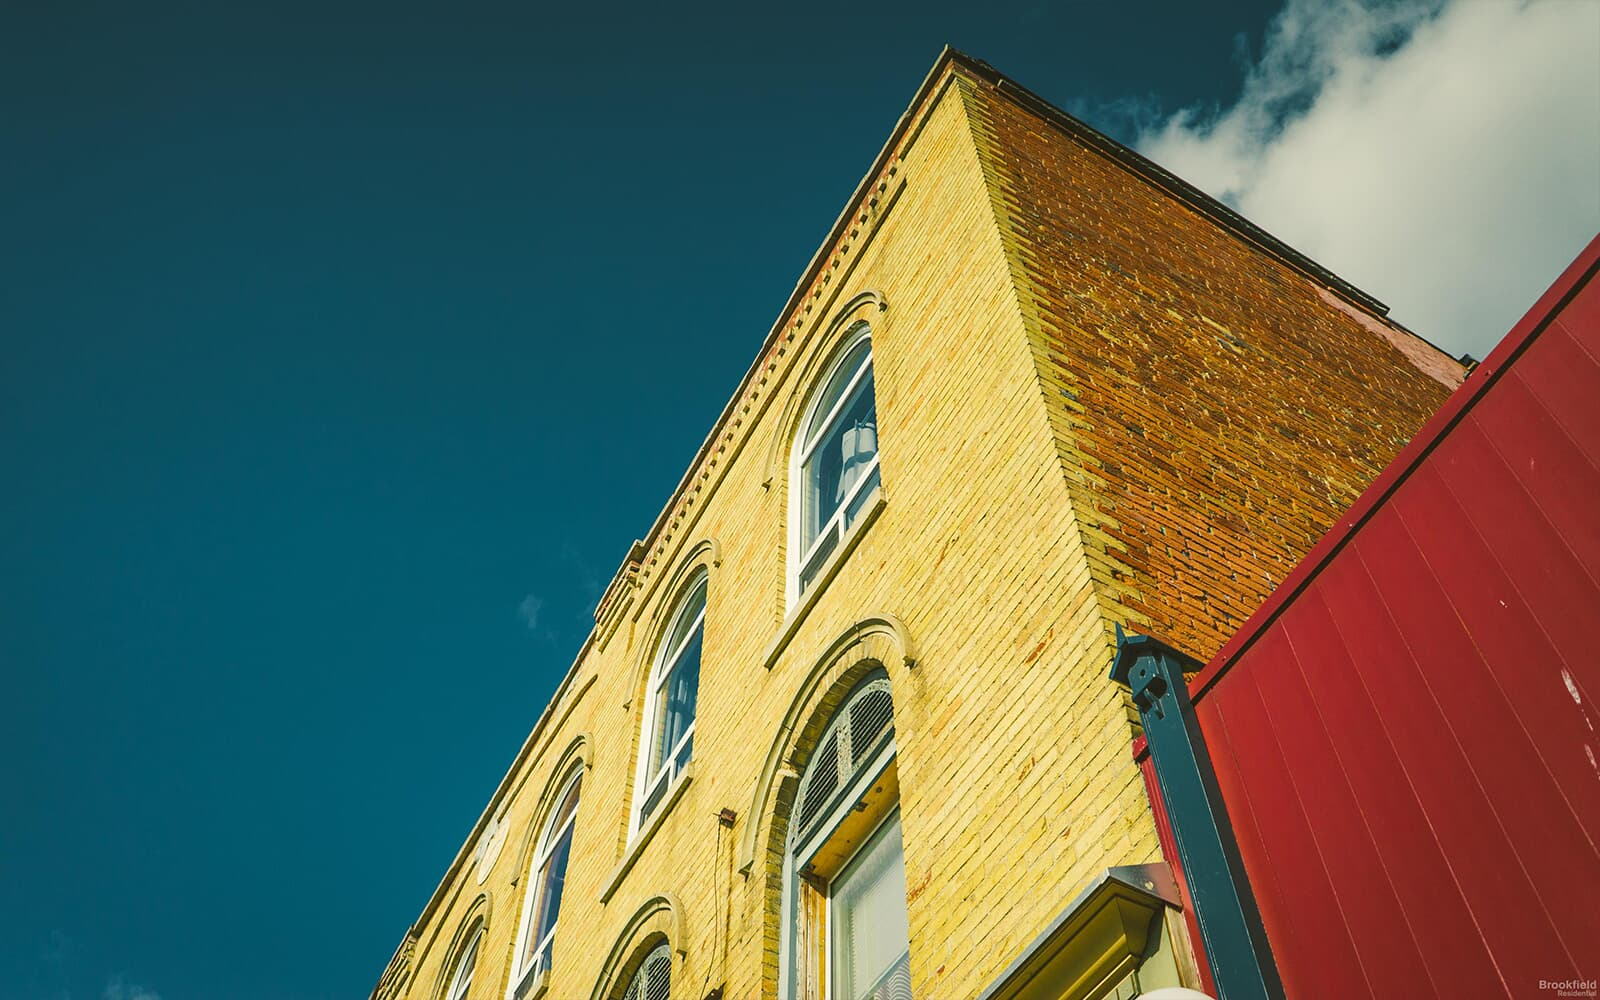 Yellow Brick Building in Whitby, ON